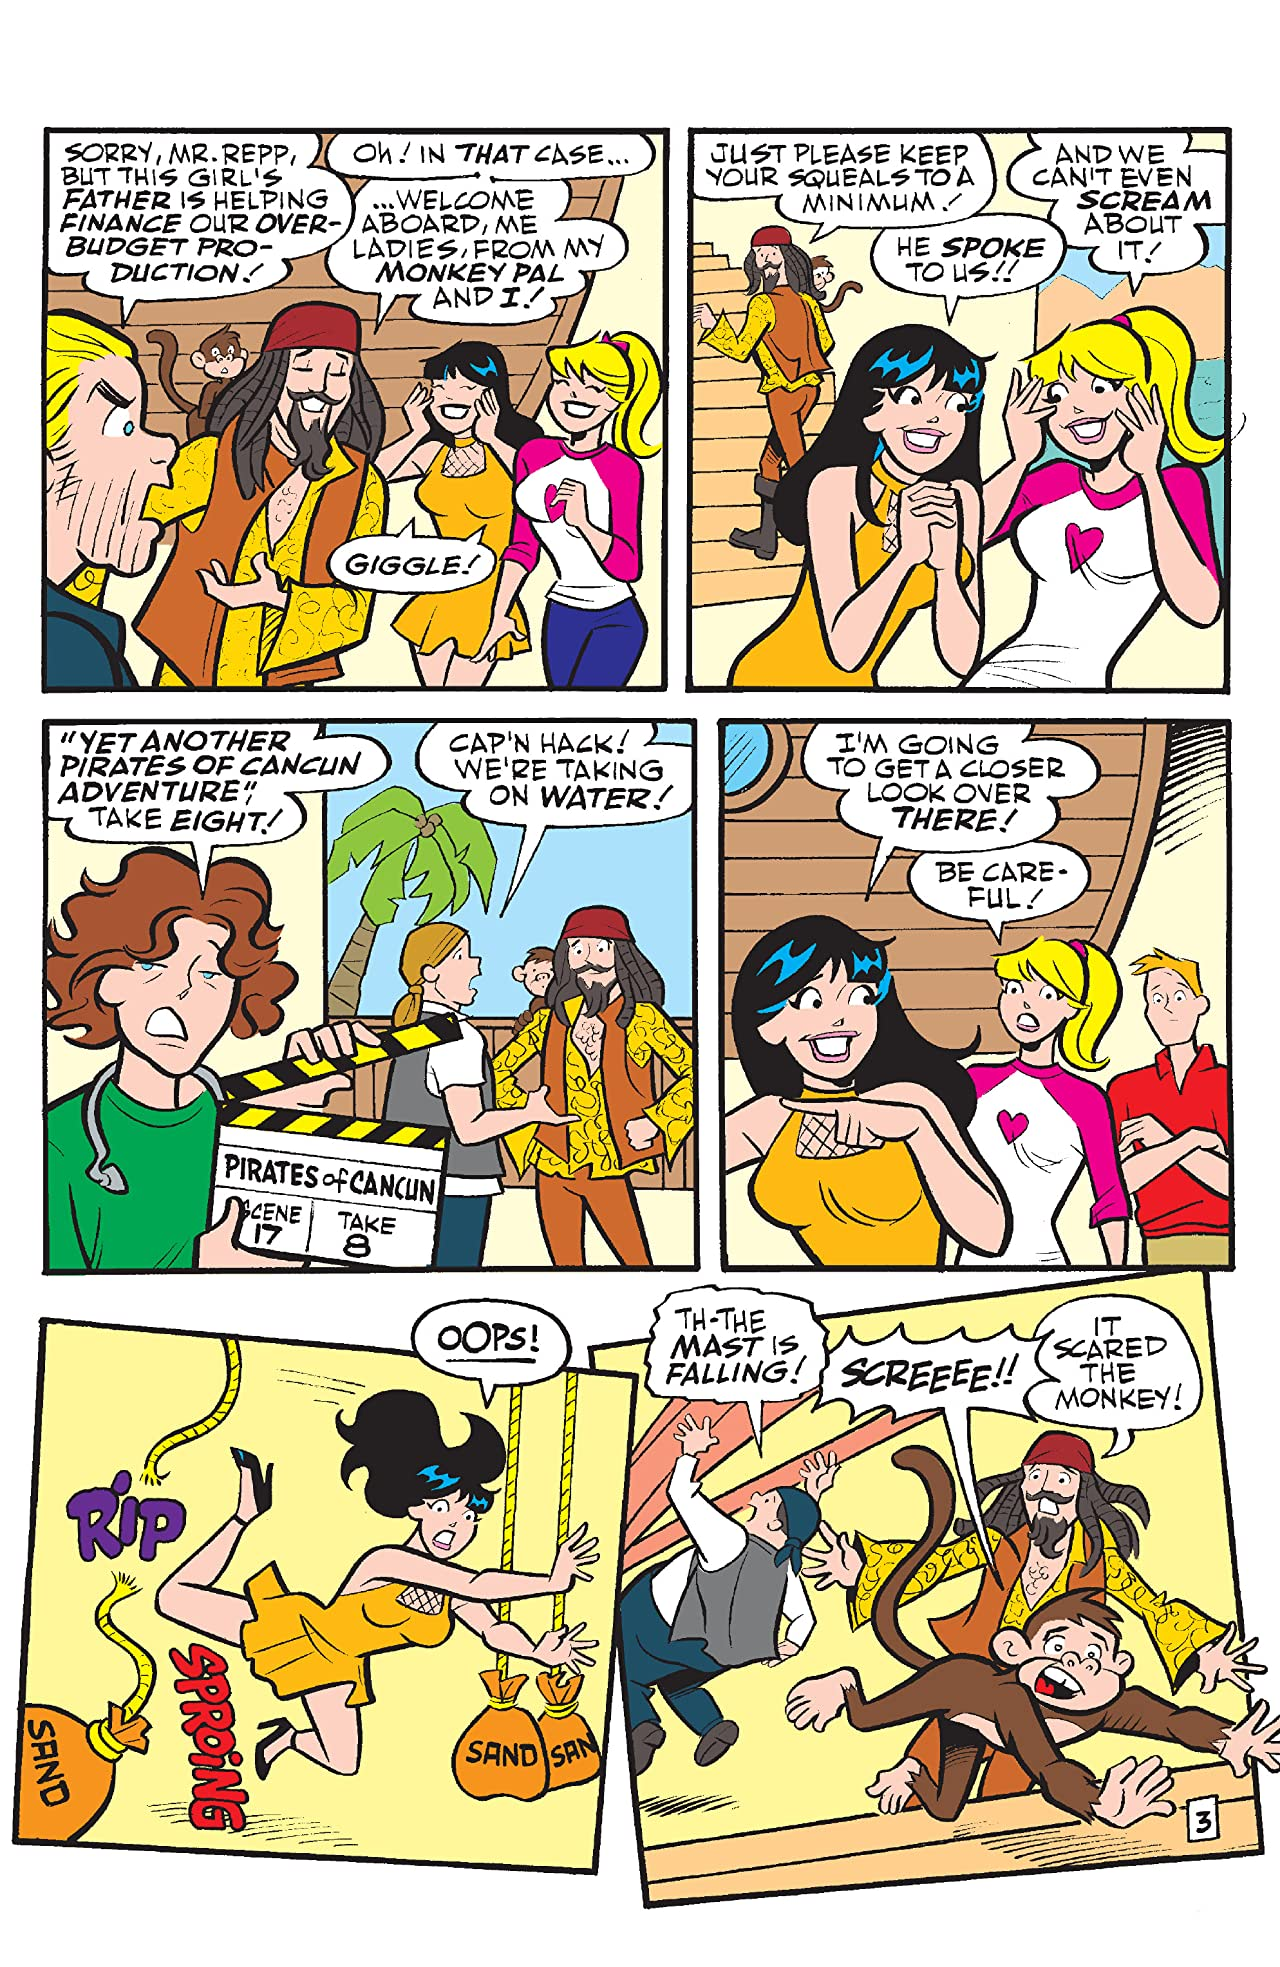 Betty & Veronica Best Friends Forever: At Movies